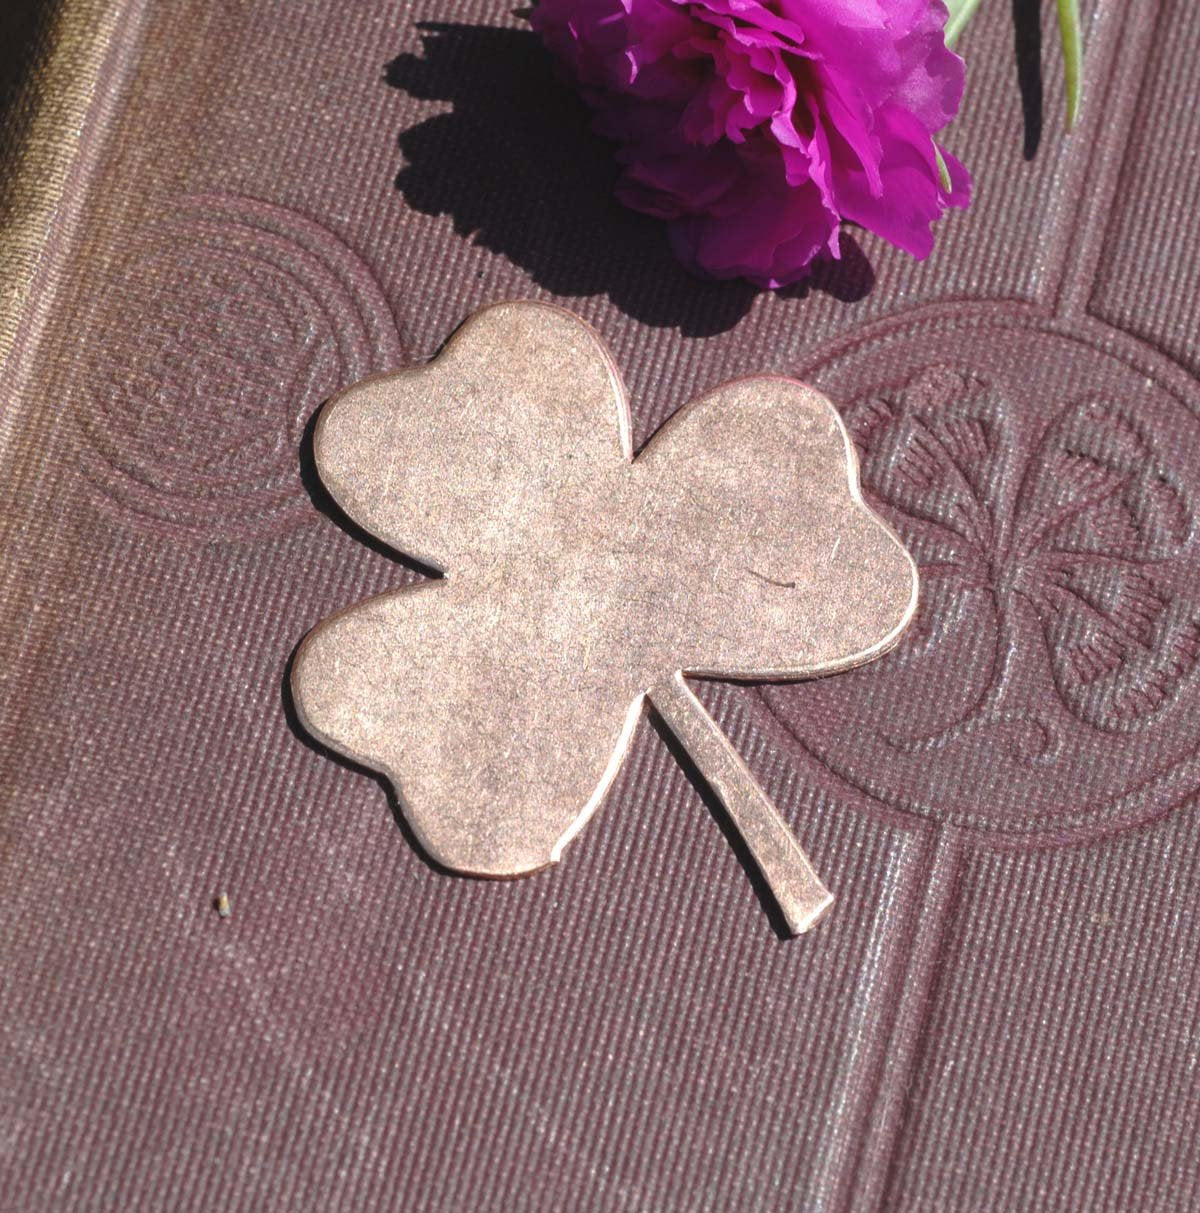 Three Leaf Clover Blank for Enameling Stamping Metalworking Blanks Variety of Metals, 4 Pieces